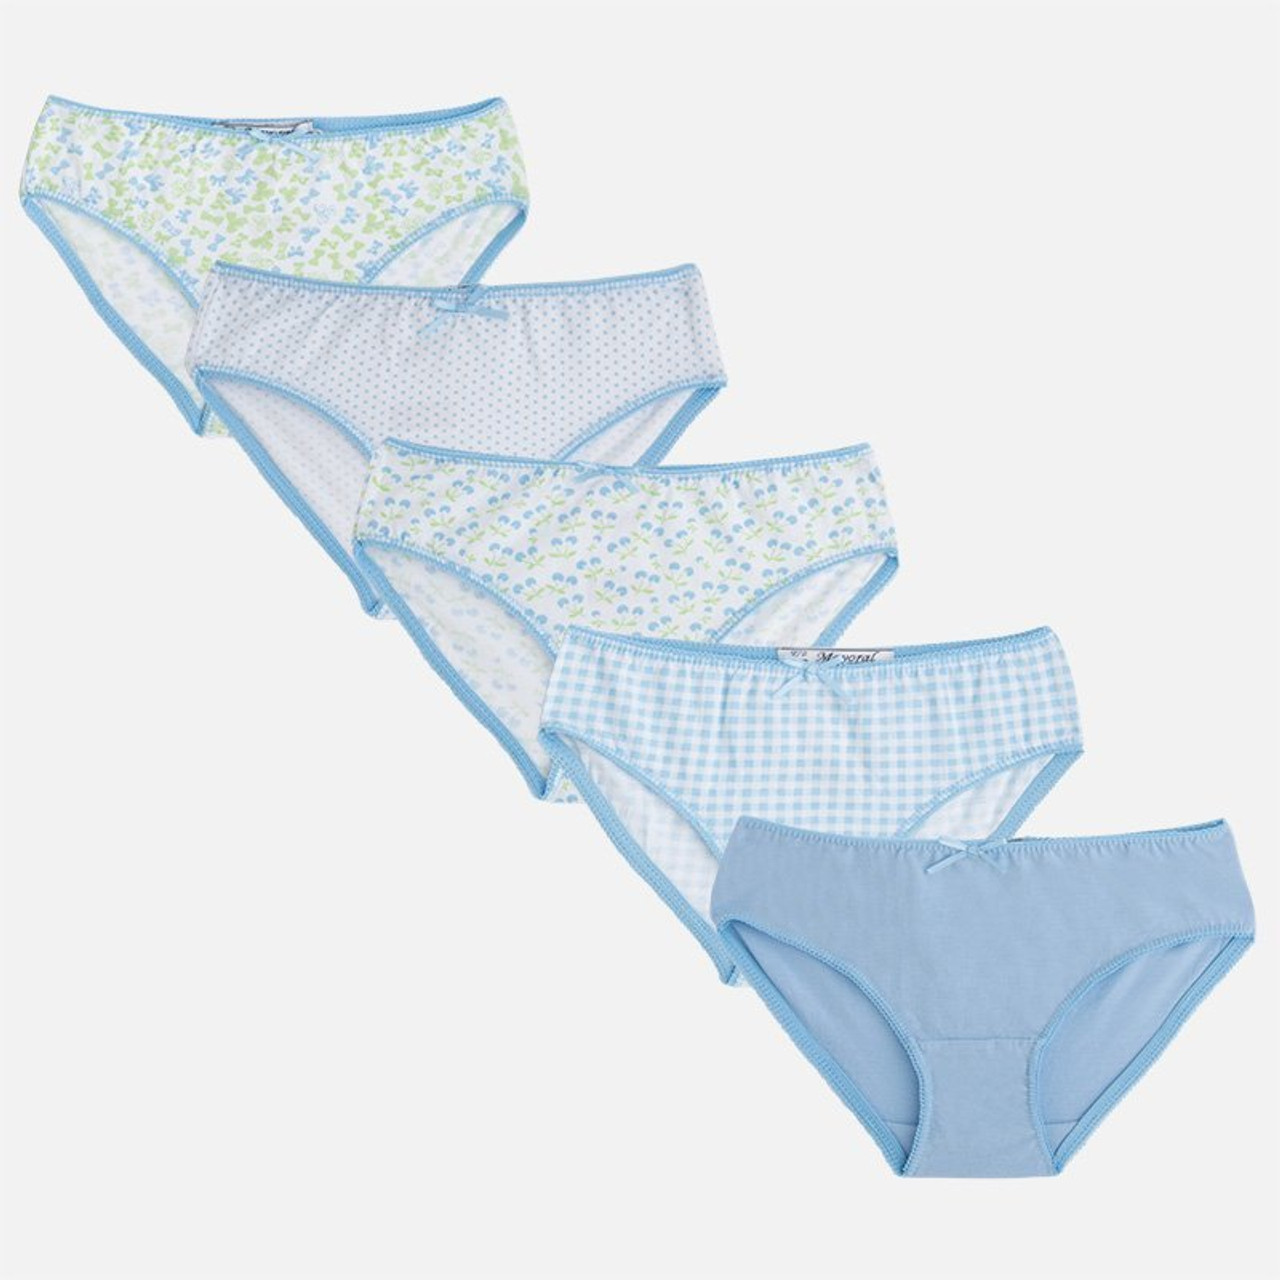 b8e7390267ea9 Mayoral Girls Knickers Set of 5 - Baby Blue - Two Birdees